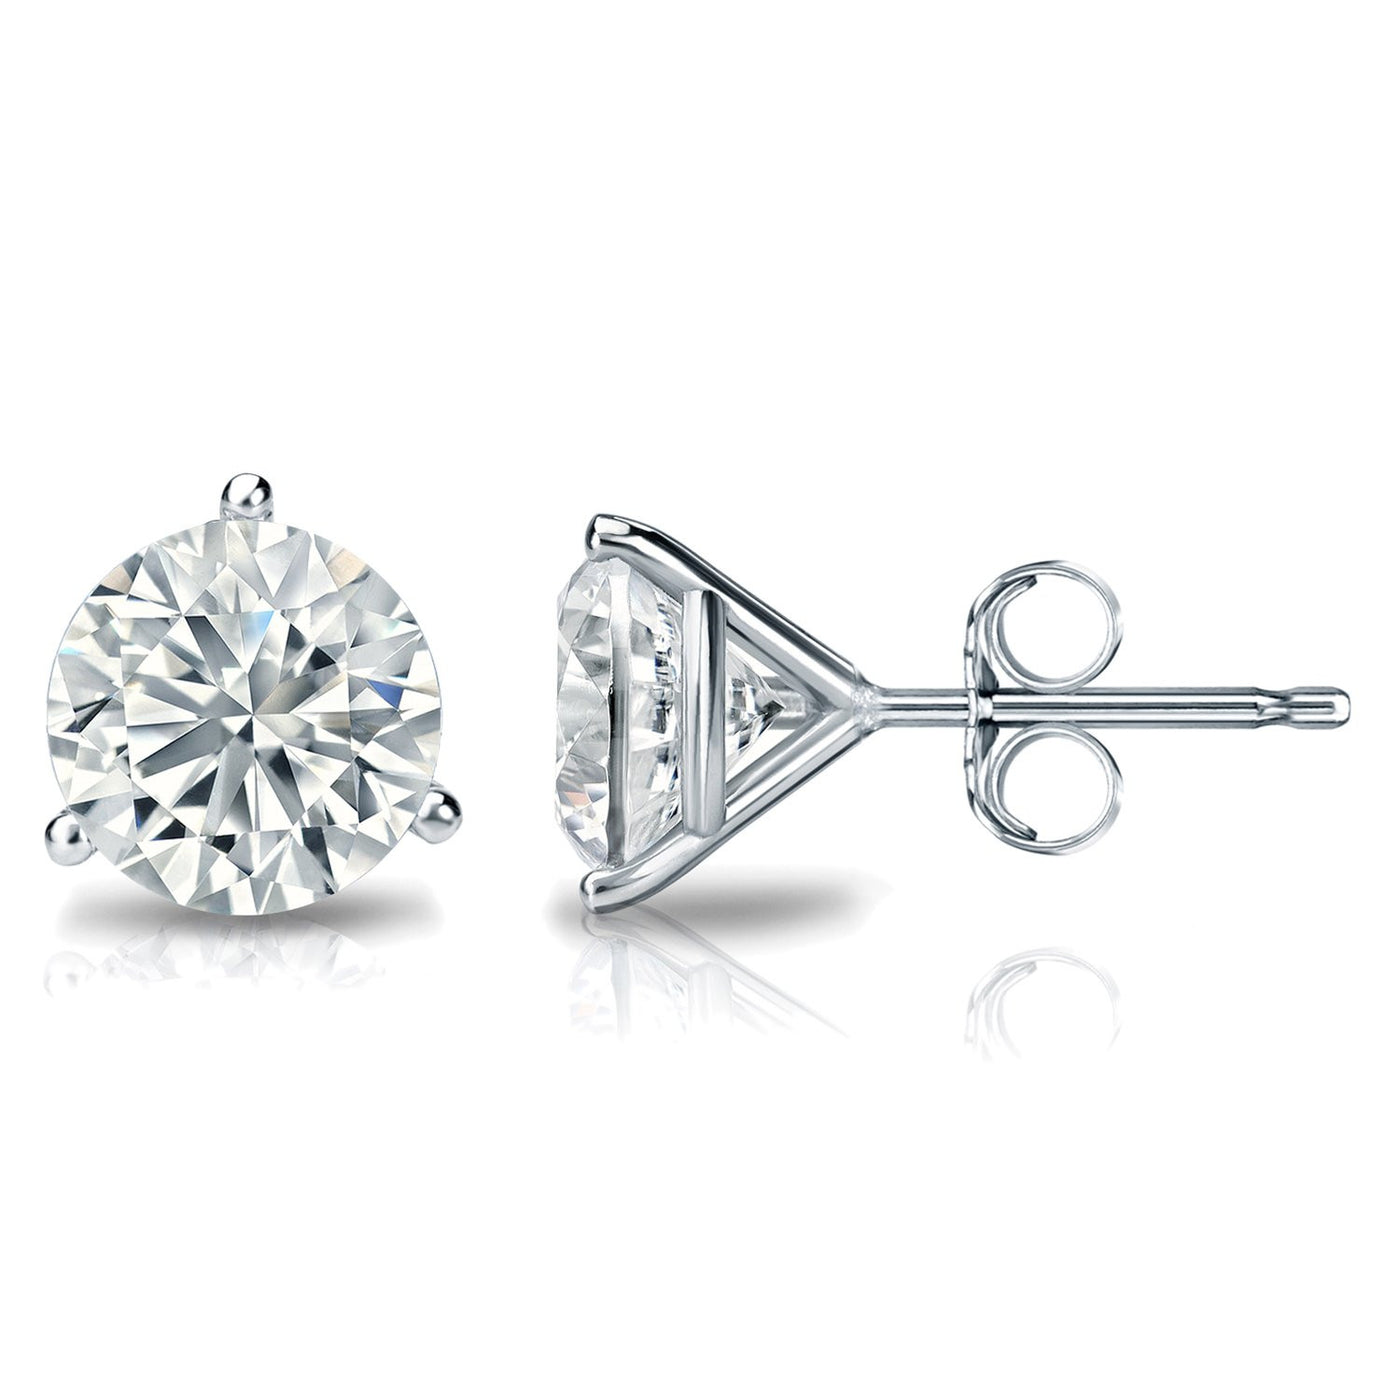 1/3 Carat Round 14k White Gold 3 Prong Martini Set Diamond Solitaire Stud Earrings (Signature Quality)